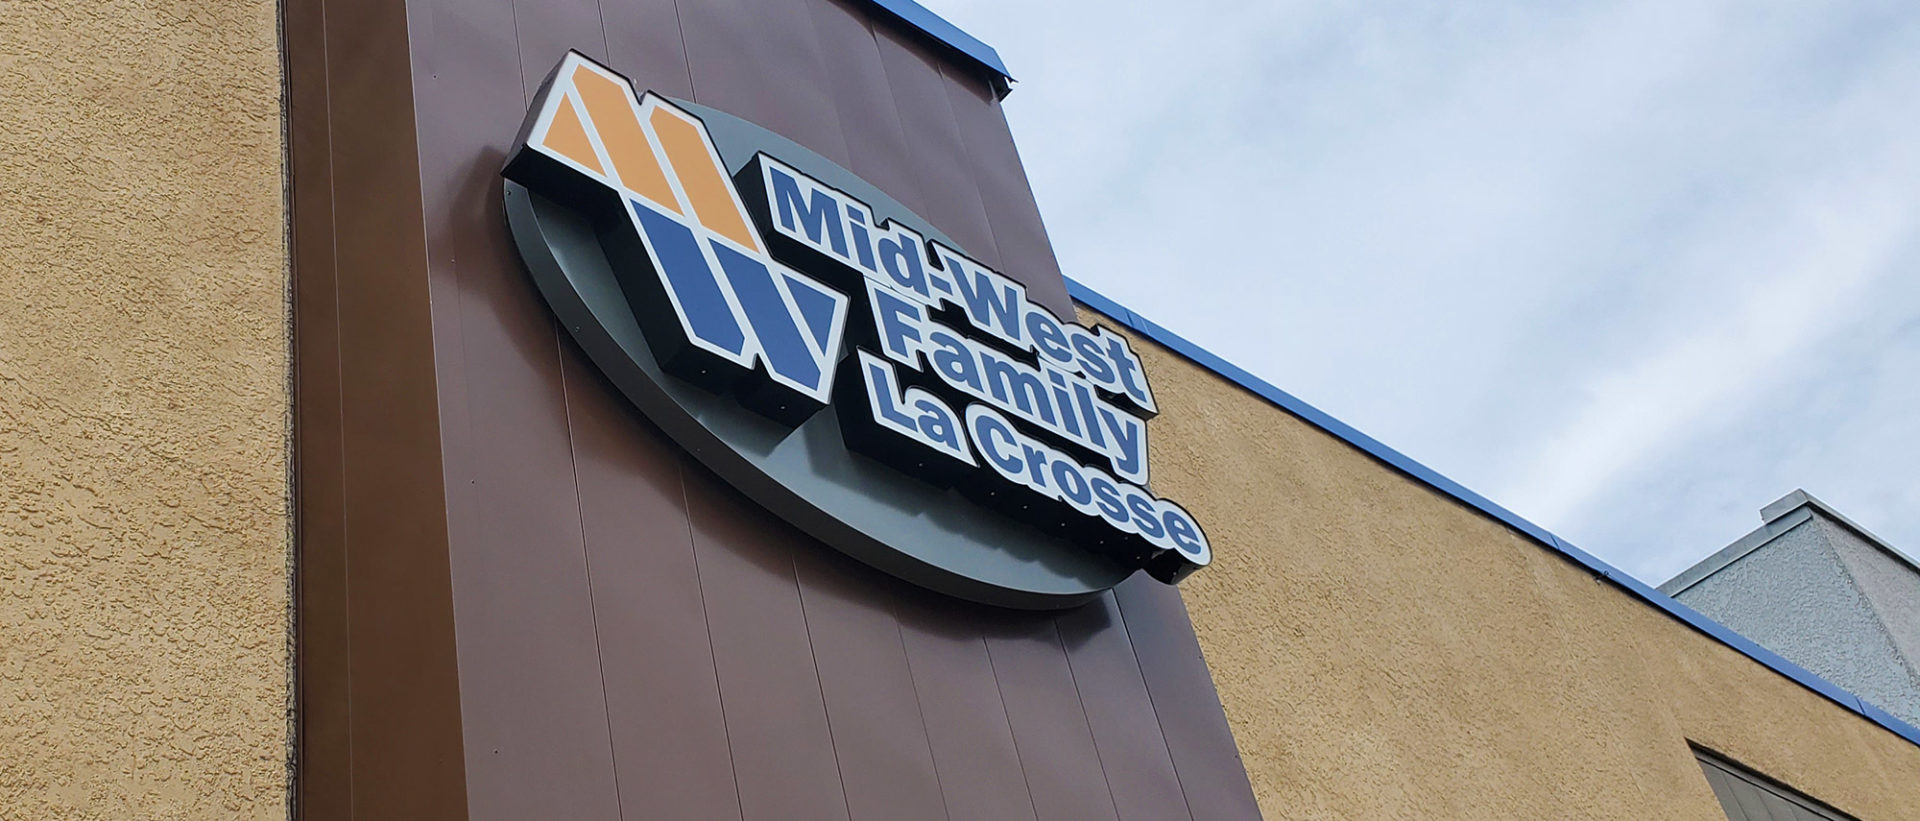 Mid-West Family La Crosse building logo